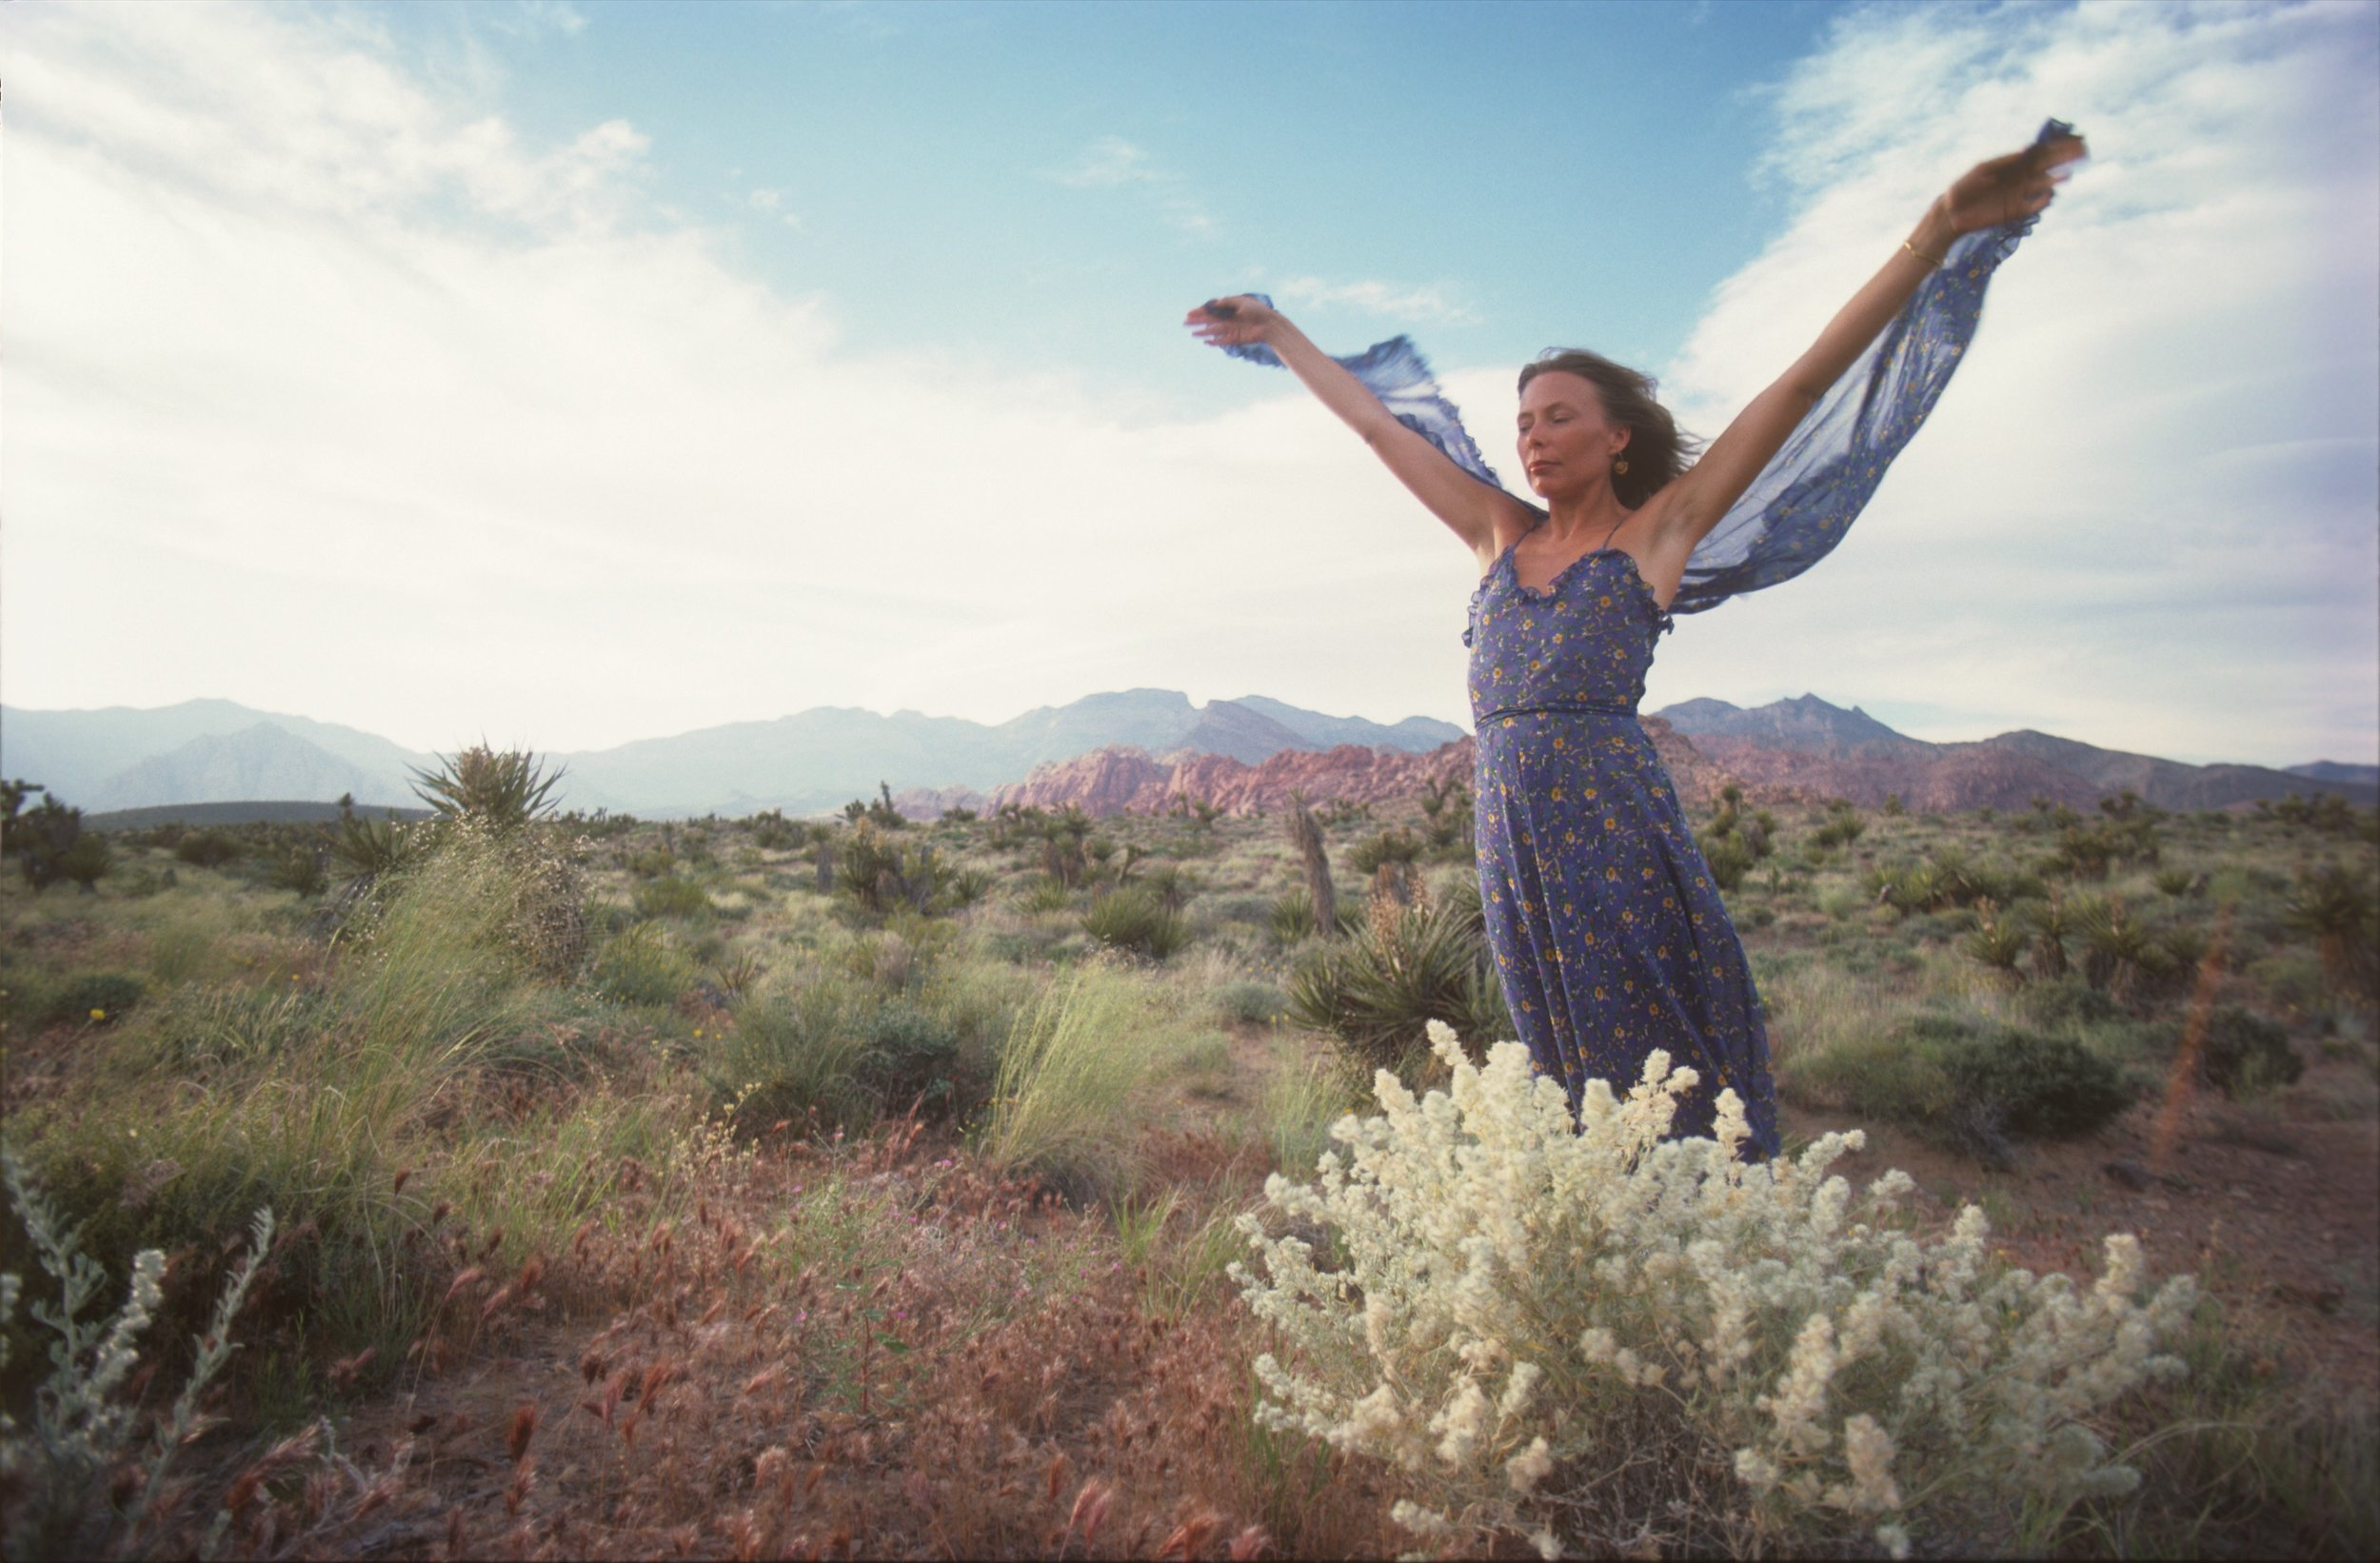 Joni Micthell in the Nevada desert, 1970 by Henry Diltz